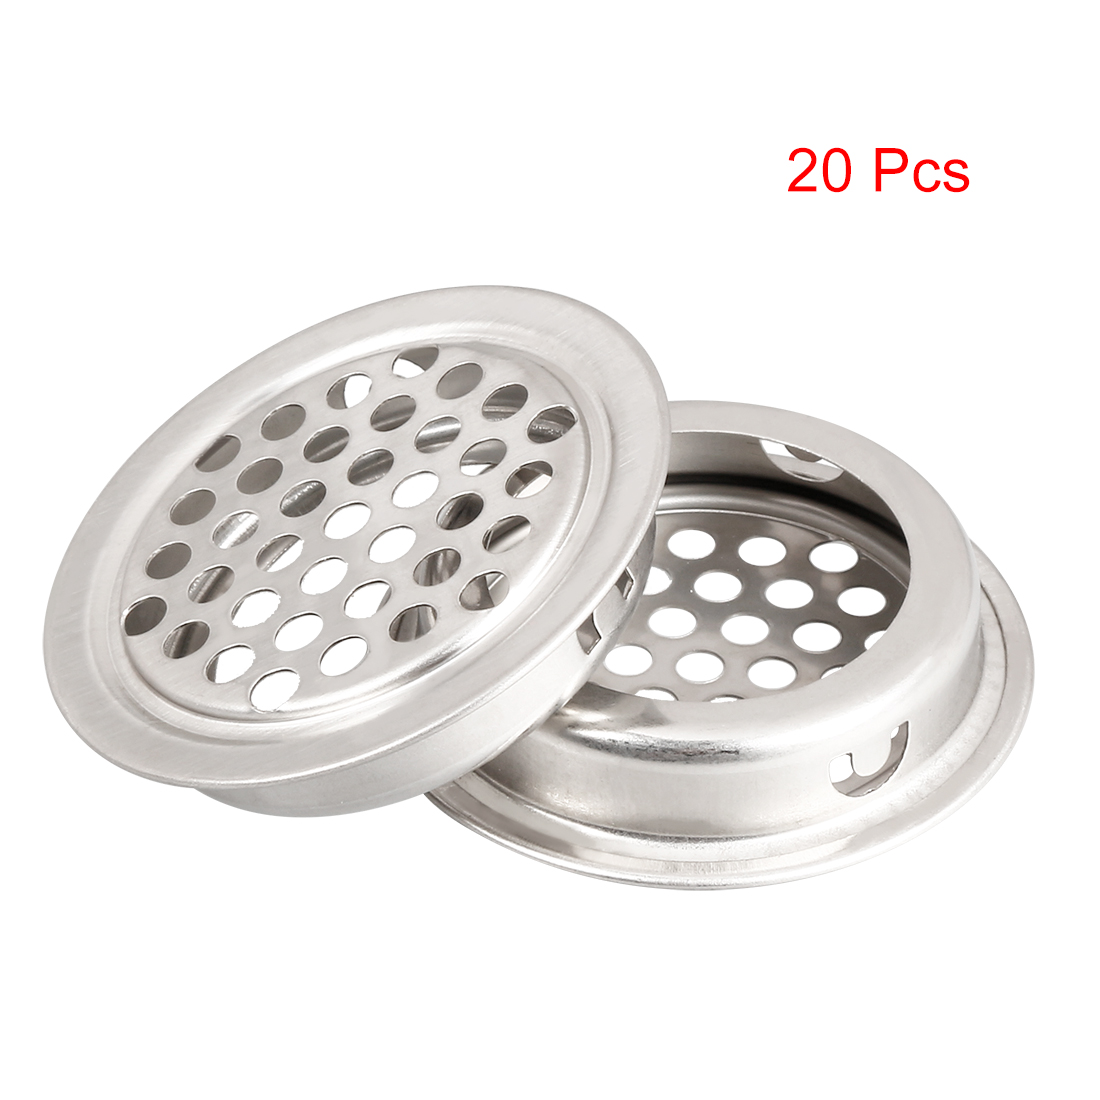 Uxcell New 20pcs 35mm 53mm Bottom Air Vent Extract Valve Grille Round Diffuser Ducting Ventilation Cover Air Vent Ventilator